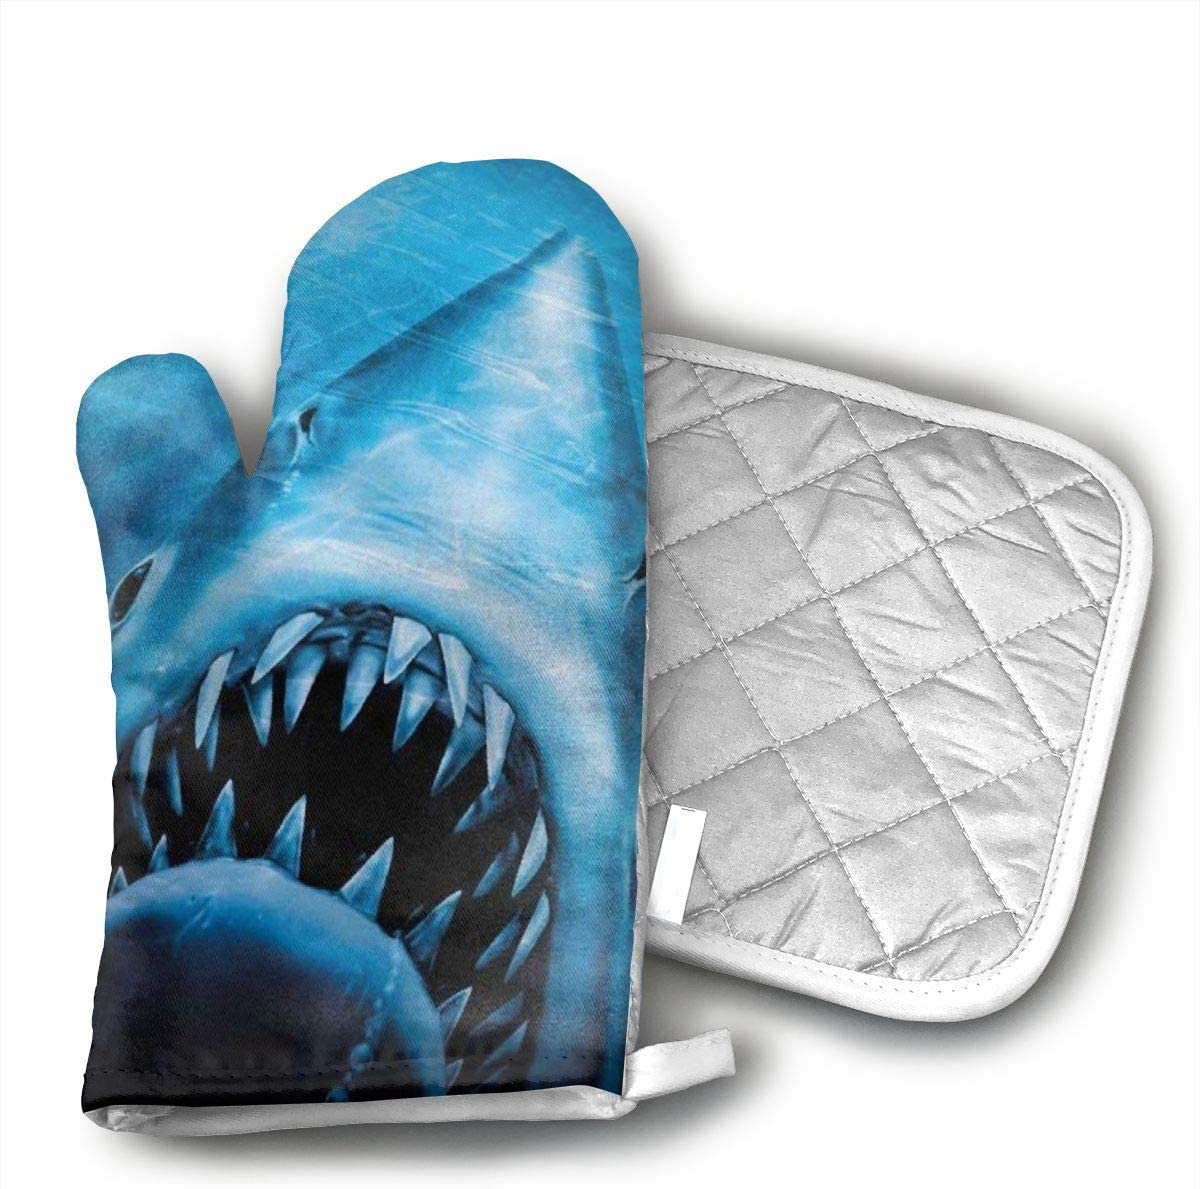 Wiqo9 Jaws of Ocean Shark Oven Mitts and Pot Holders Kitchen Mitten Cooking Gloves,Cooking, Baking, BBQ.